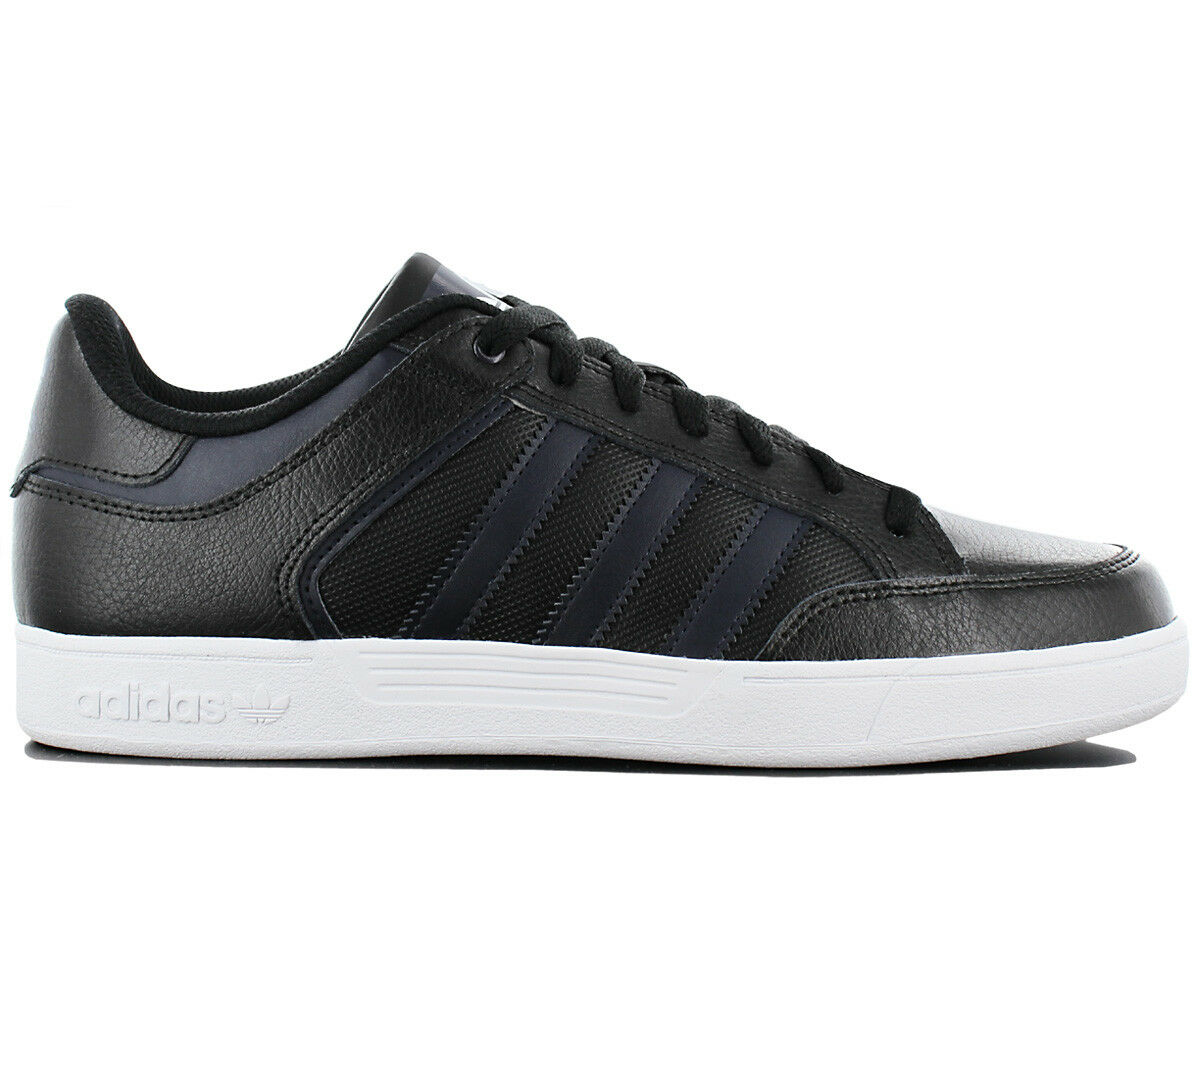 Adidas Varial Low Men's Sneakers Shoes Leather Black Skate Shoes by4057 NEW